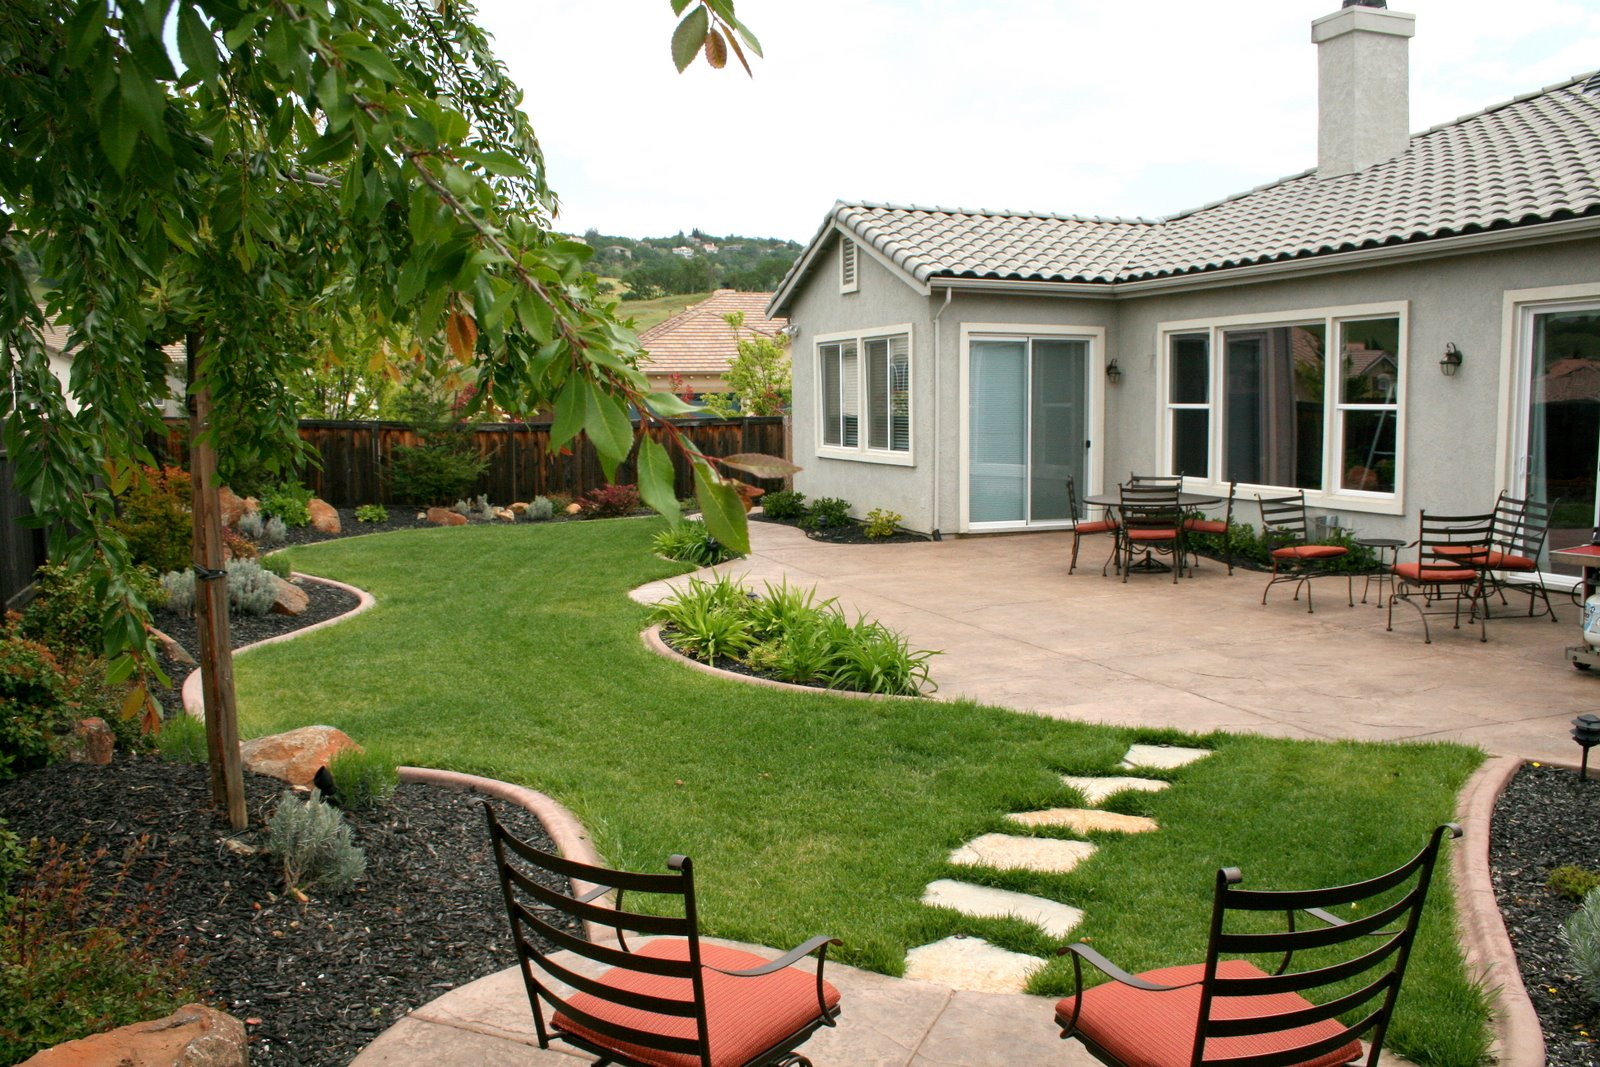 Affordable Backyard Ideas Home Interior Design 2016 in Budget Friendly Backyard Landscaping